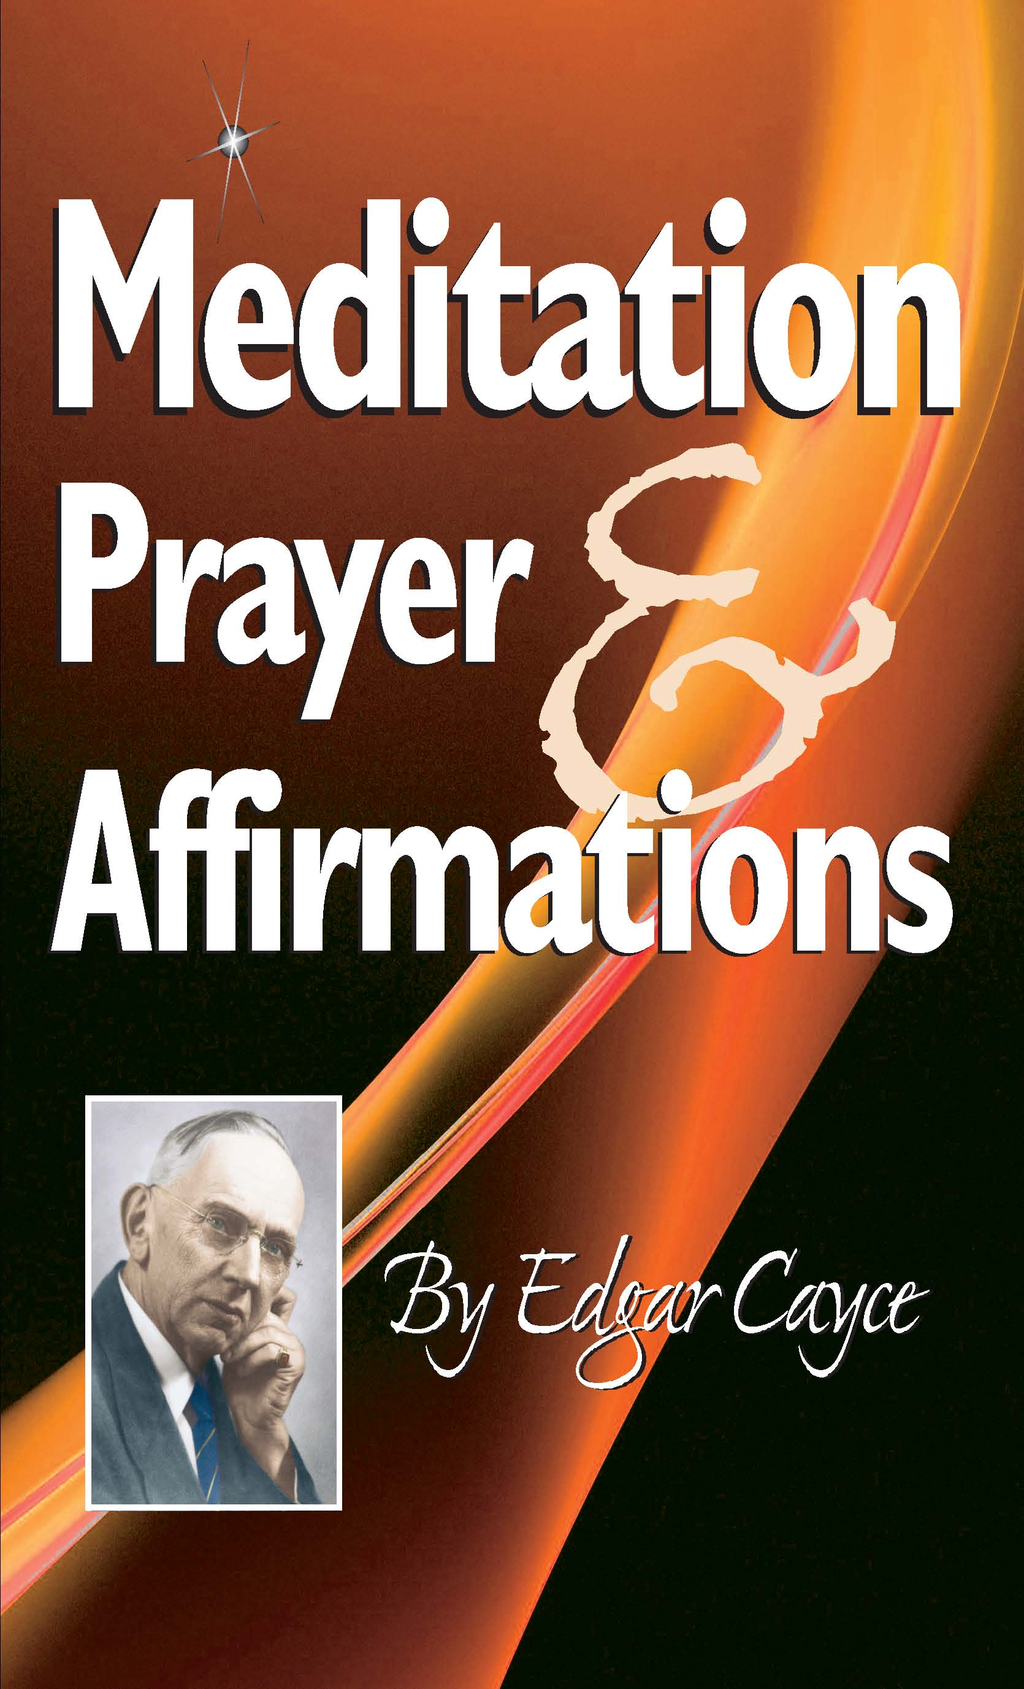 Meditation, Prayer & Affirmation